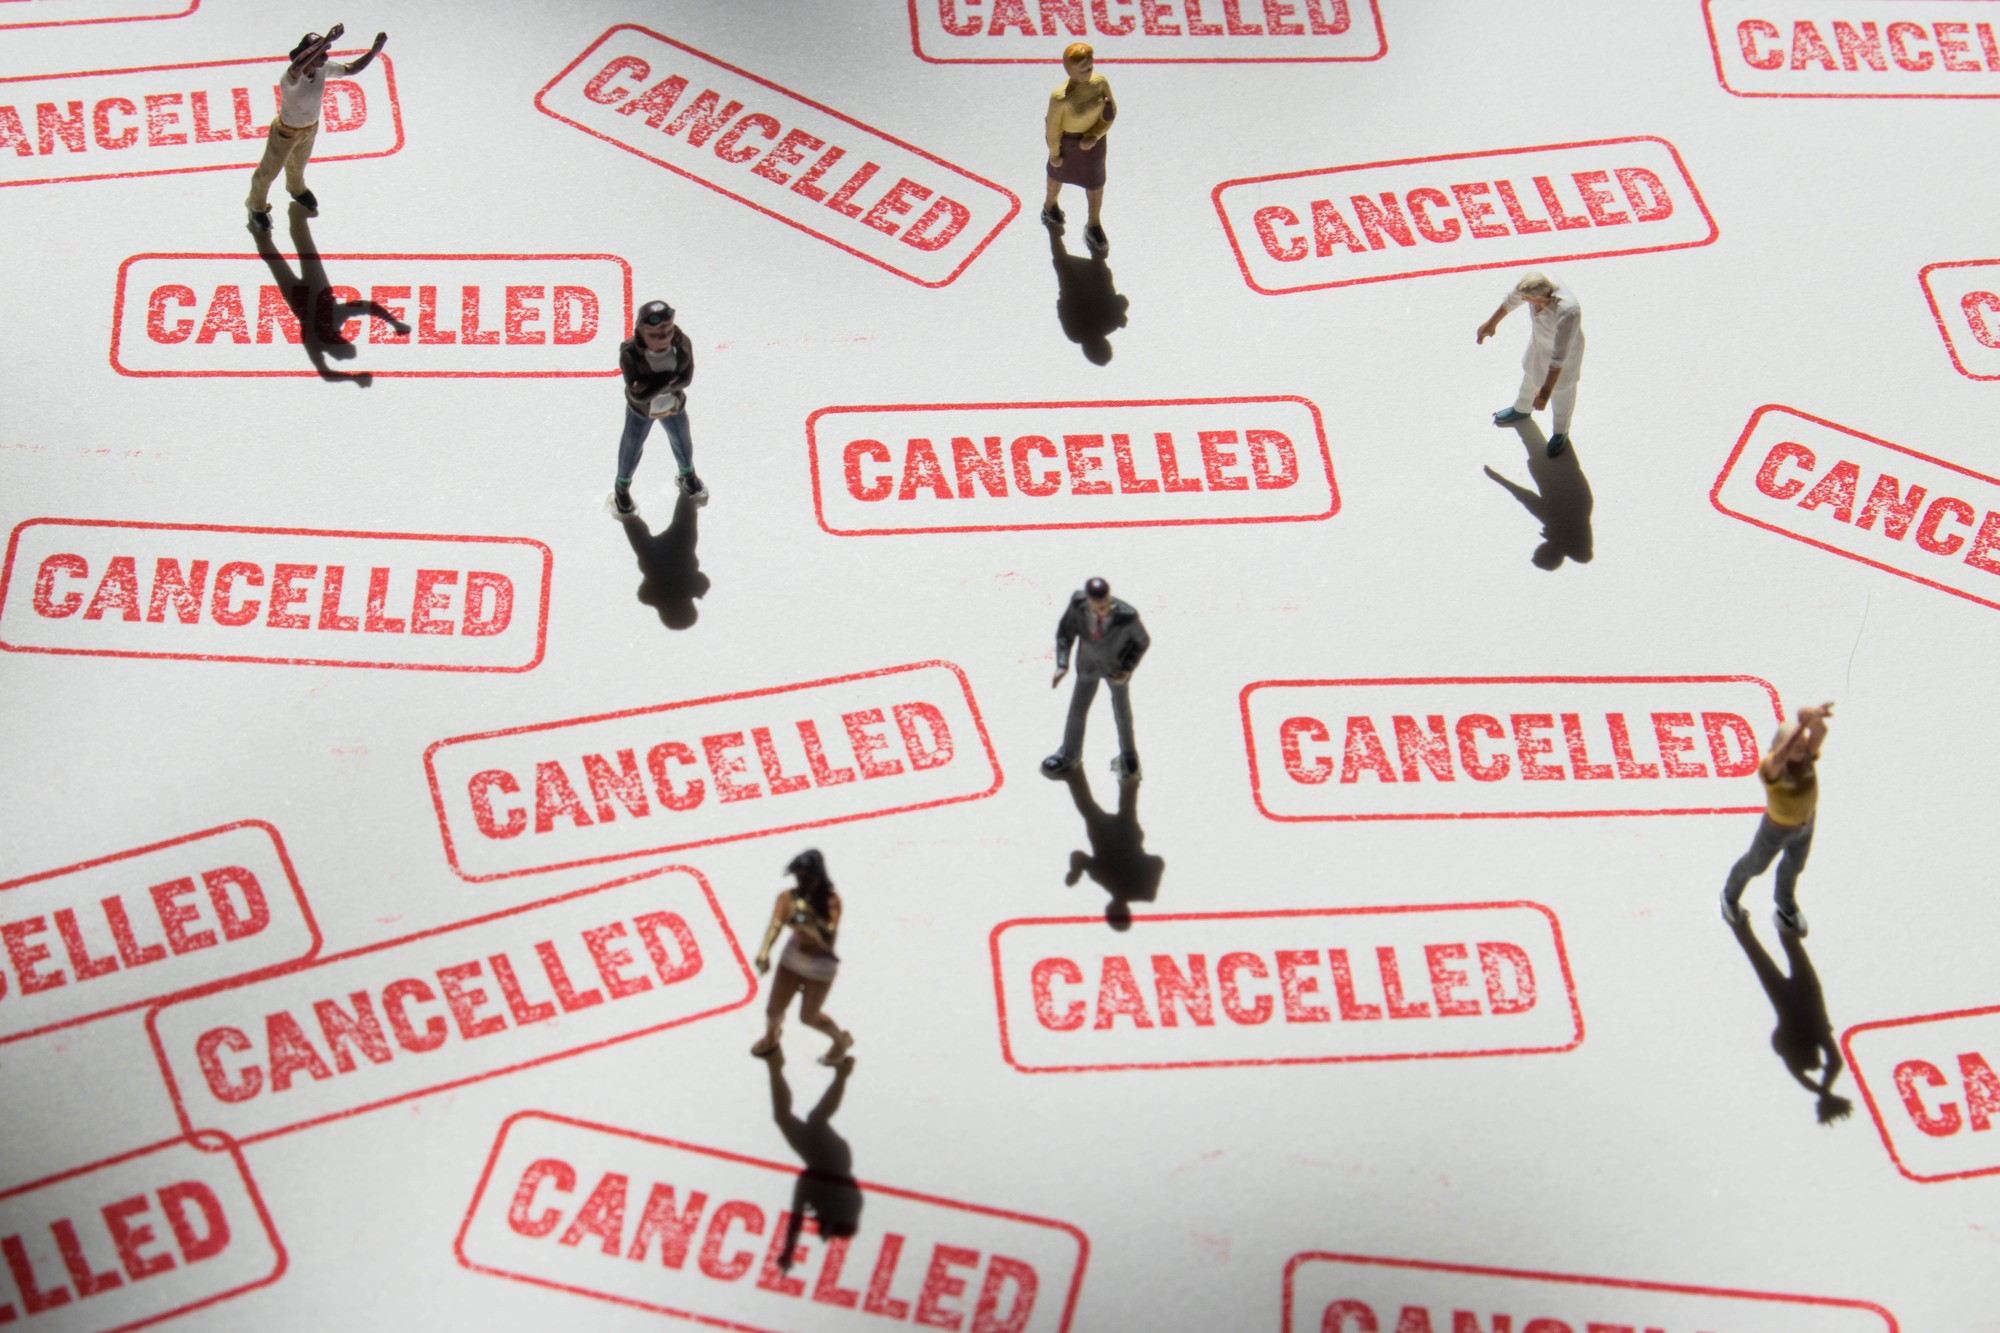 Redemption for People Who Have Been Canceled Is Not a Top Priority